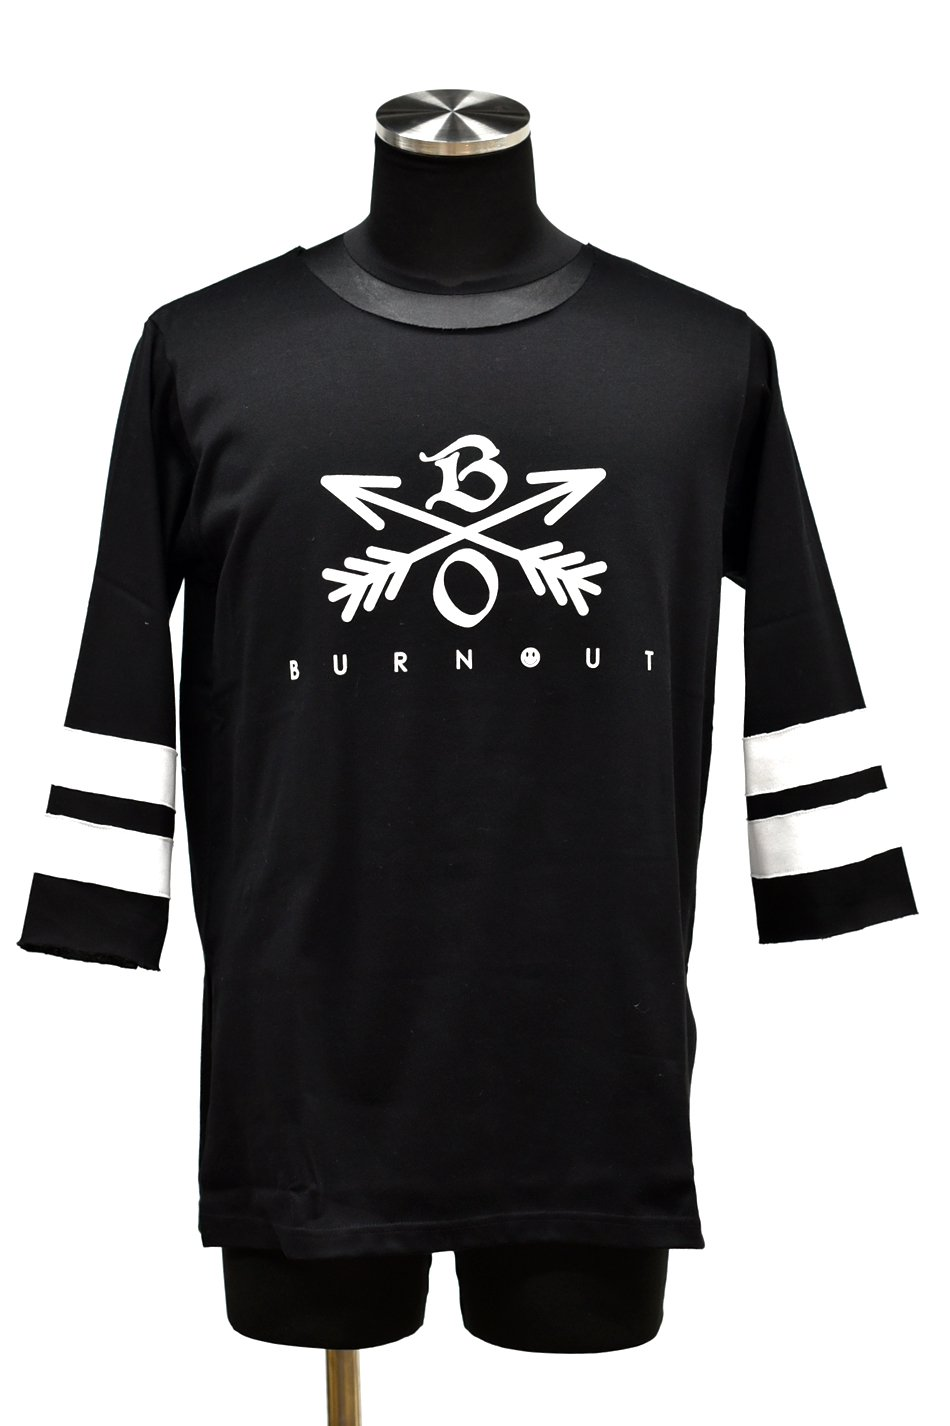 Burnout(バーンアウト)Crossed Arrows 3/4 スリーブ ヘビーウェイトTシャツ / ブラック<img class='new_mark_img2' src='//img.shop-pro.jp/img/new/icons5.gif' style='border:none;display:inline;margin:0px;padding:0px;width:auto;' />